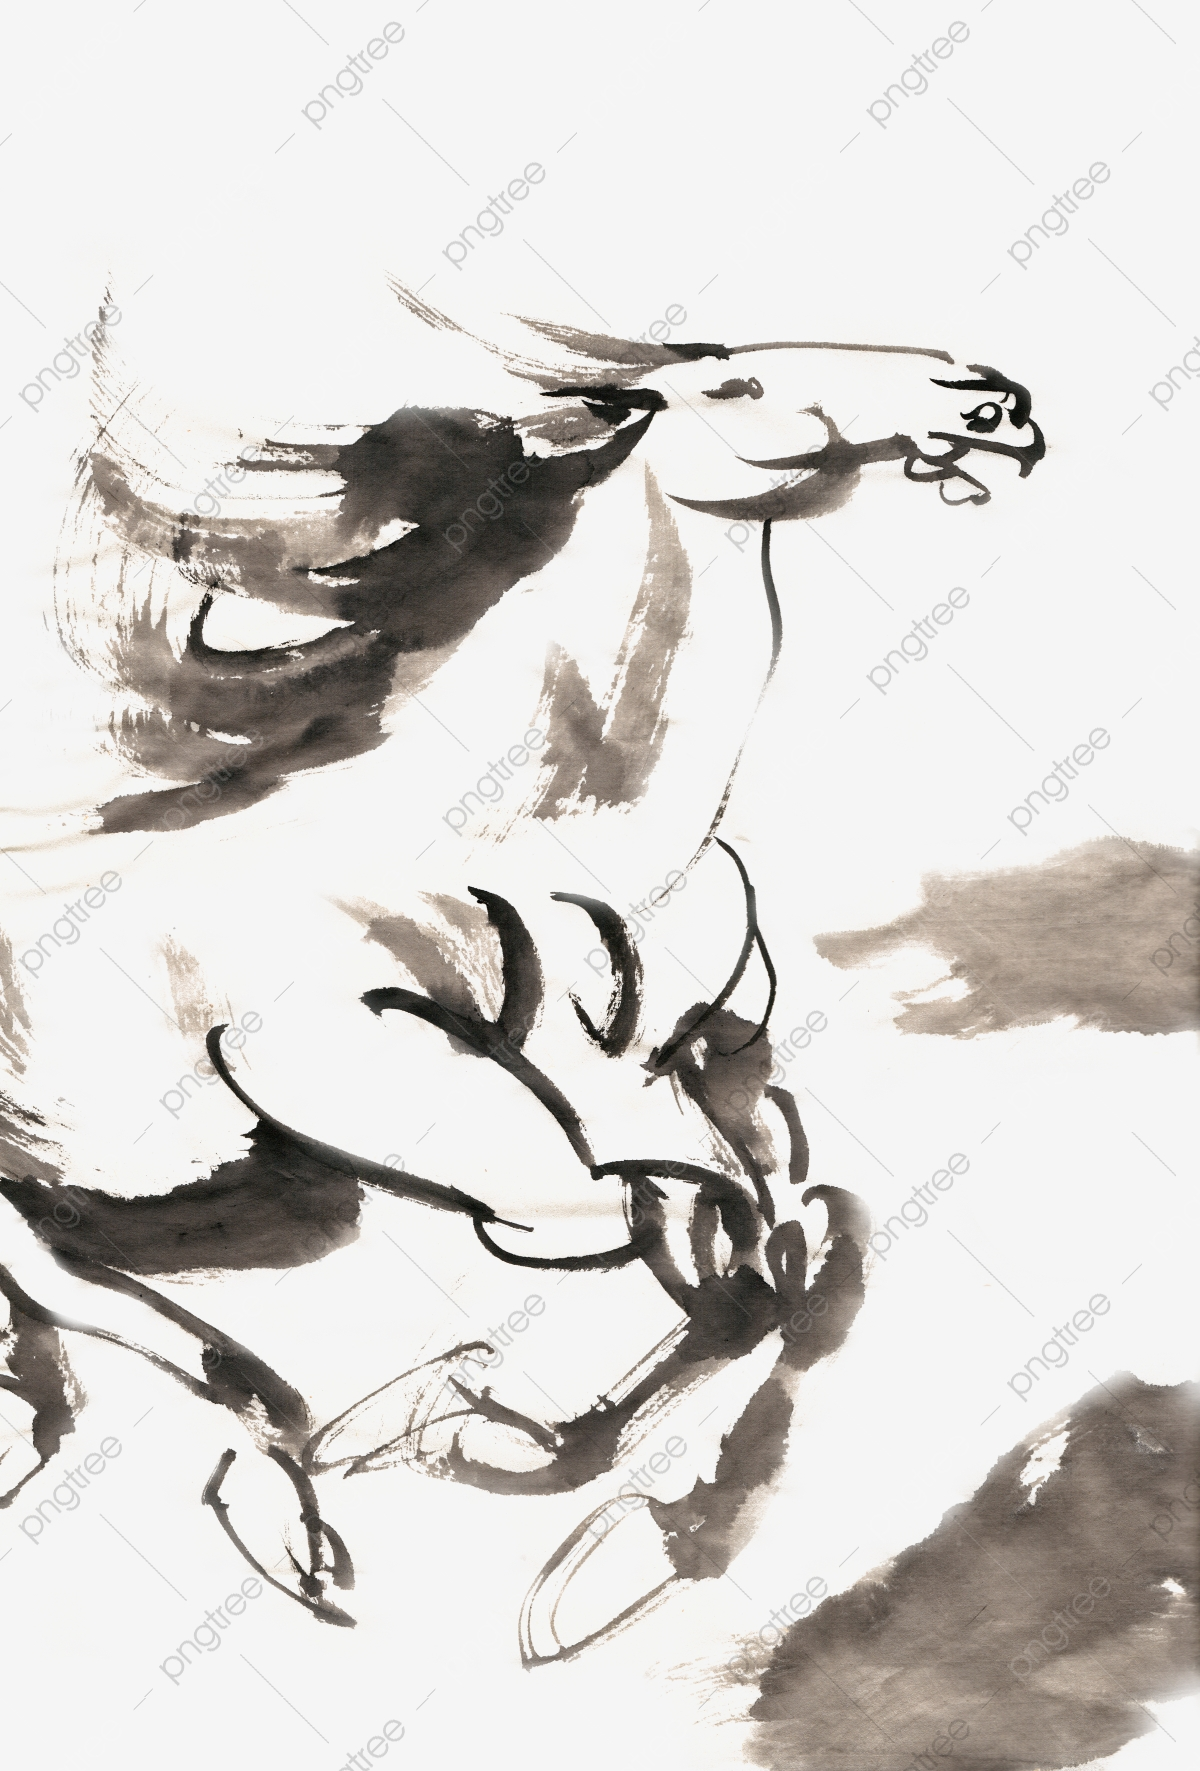 Ink Traditional Chinese Painting Hand Painted Animal Horse Flying Mercedes Png Transparent Clipart Image And Psd File For Free Download